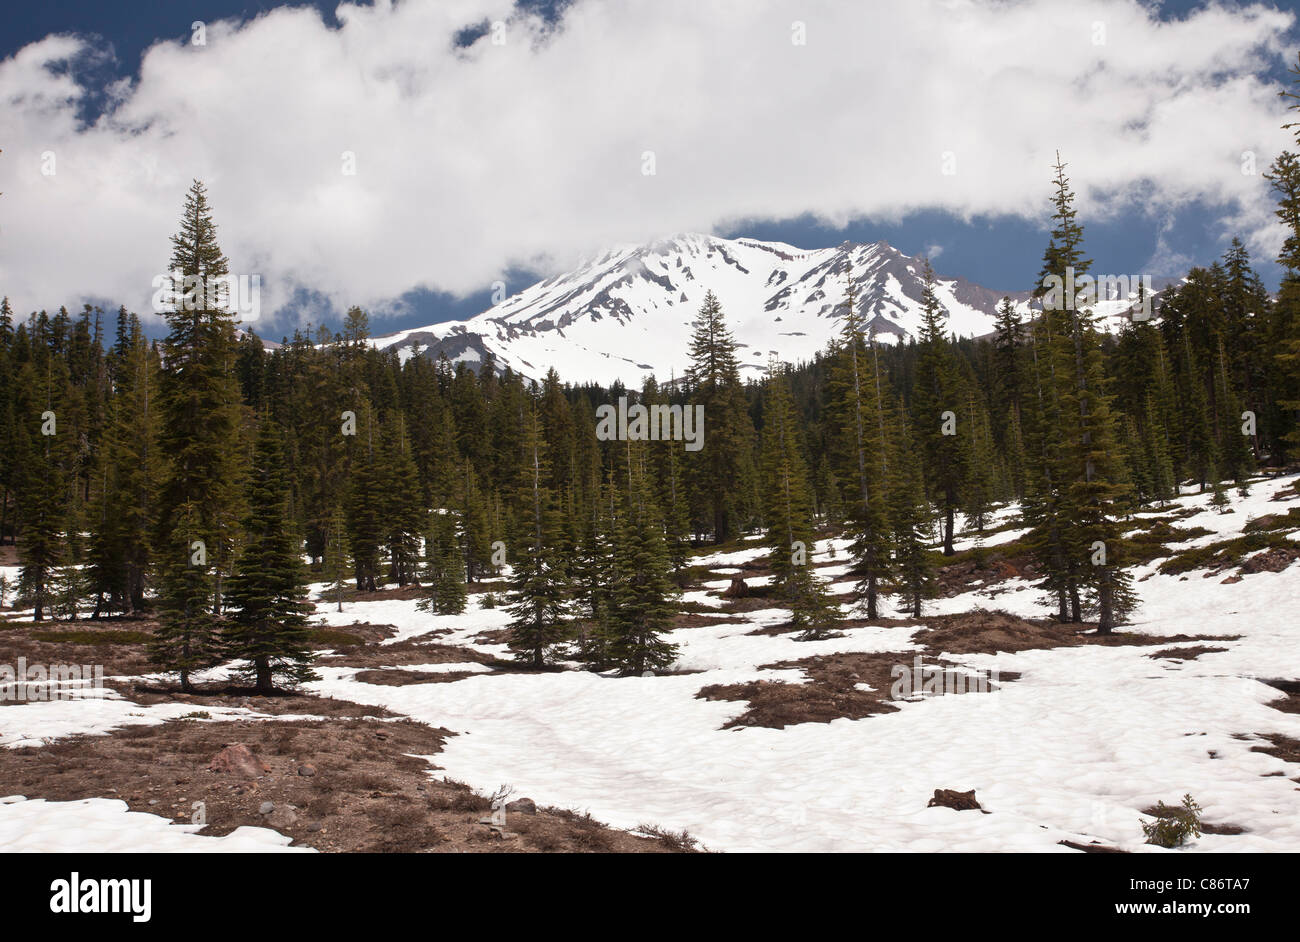 Mount Shasta in late spring, north California, USA - Stock Image